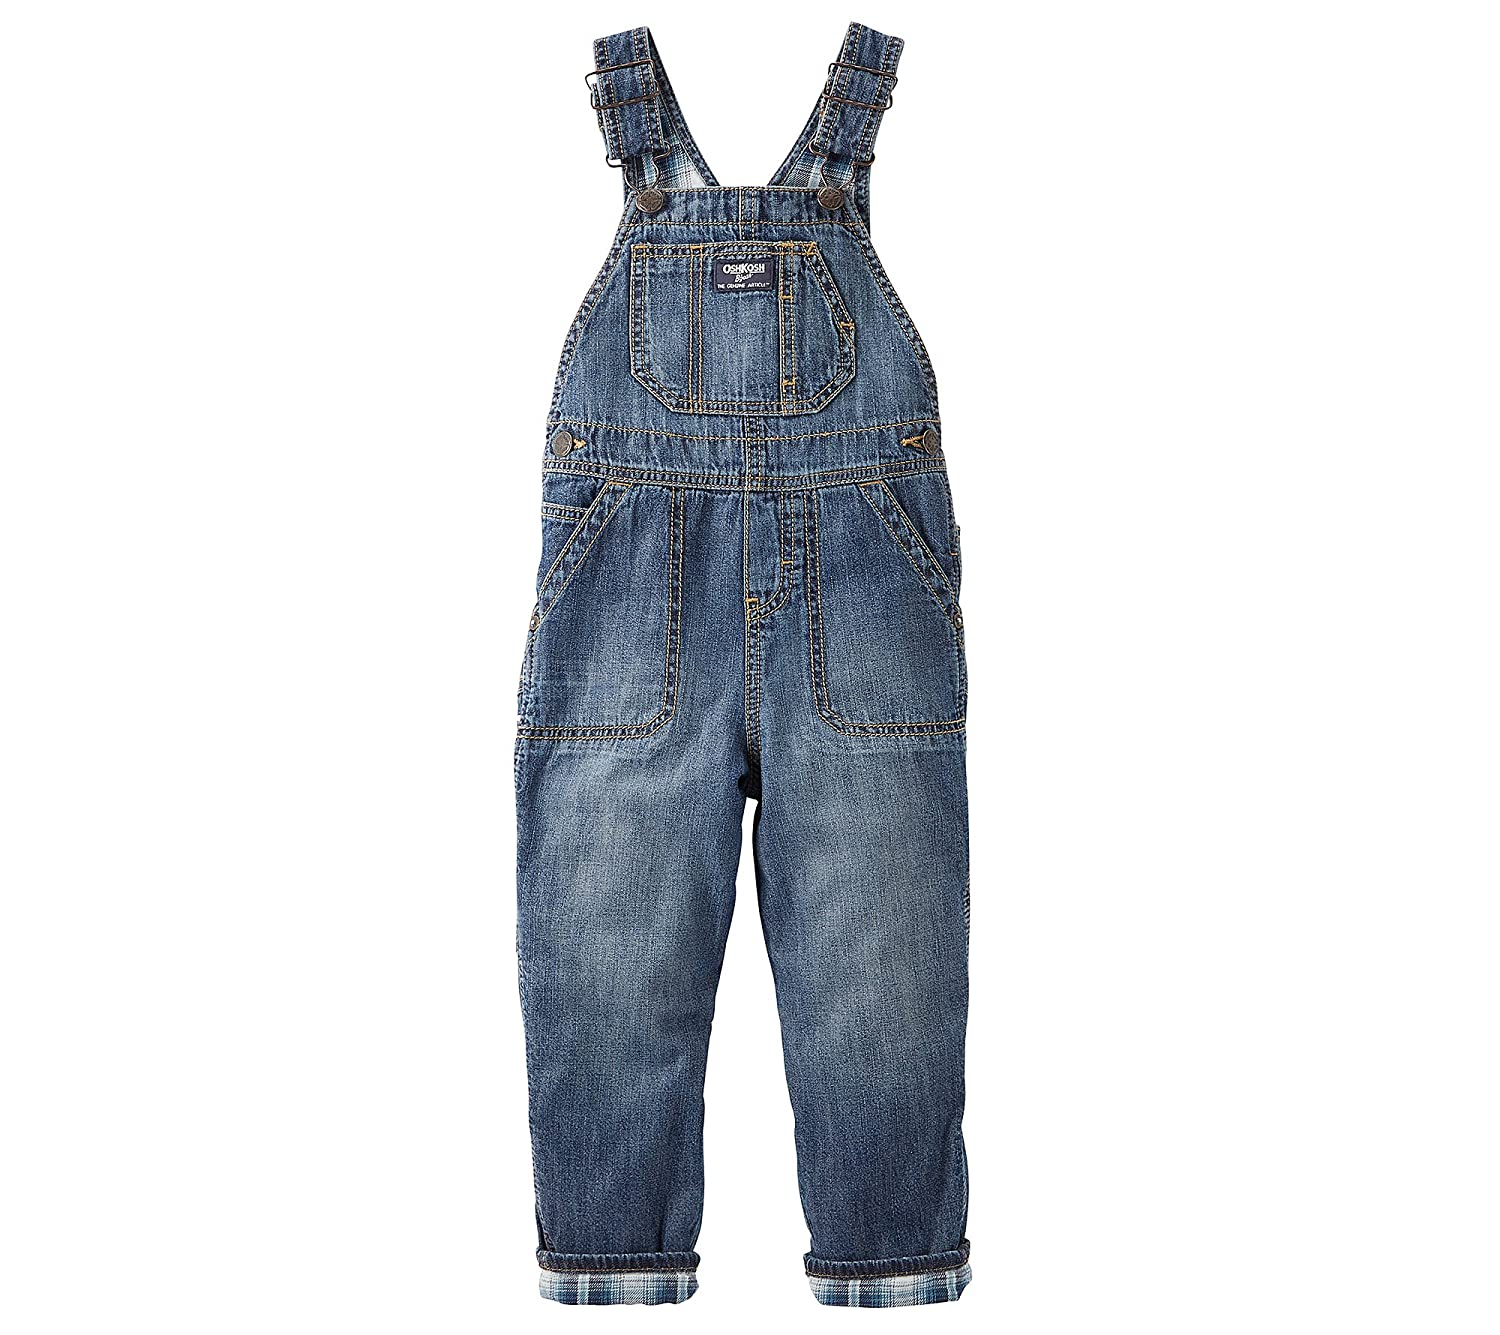 OshKosh B'gosh Flannel Lined Overalls (Baby/Toddler)